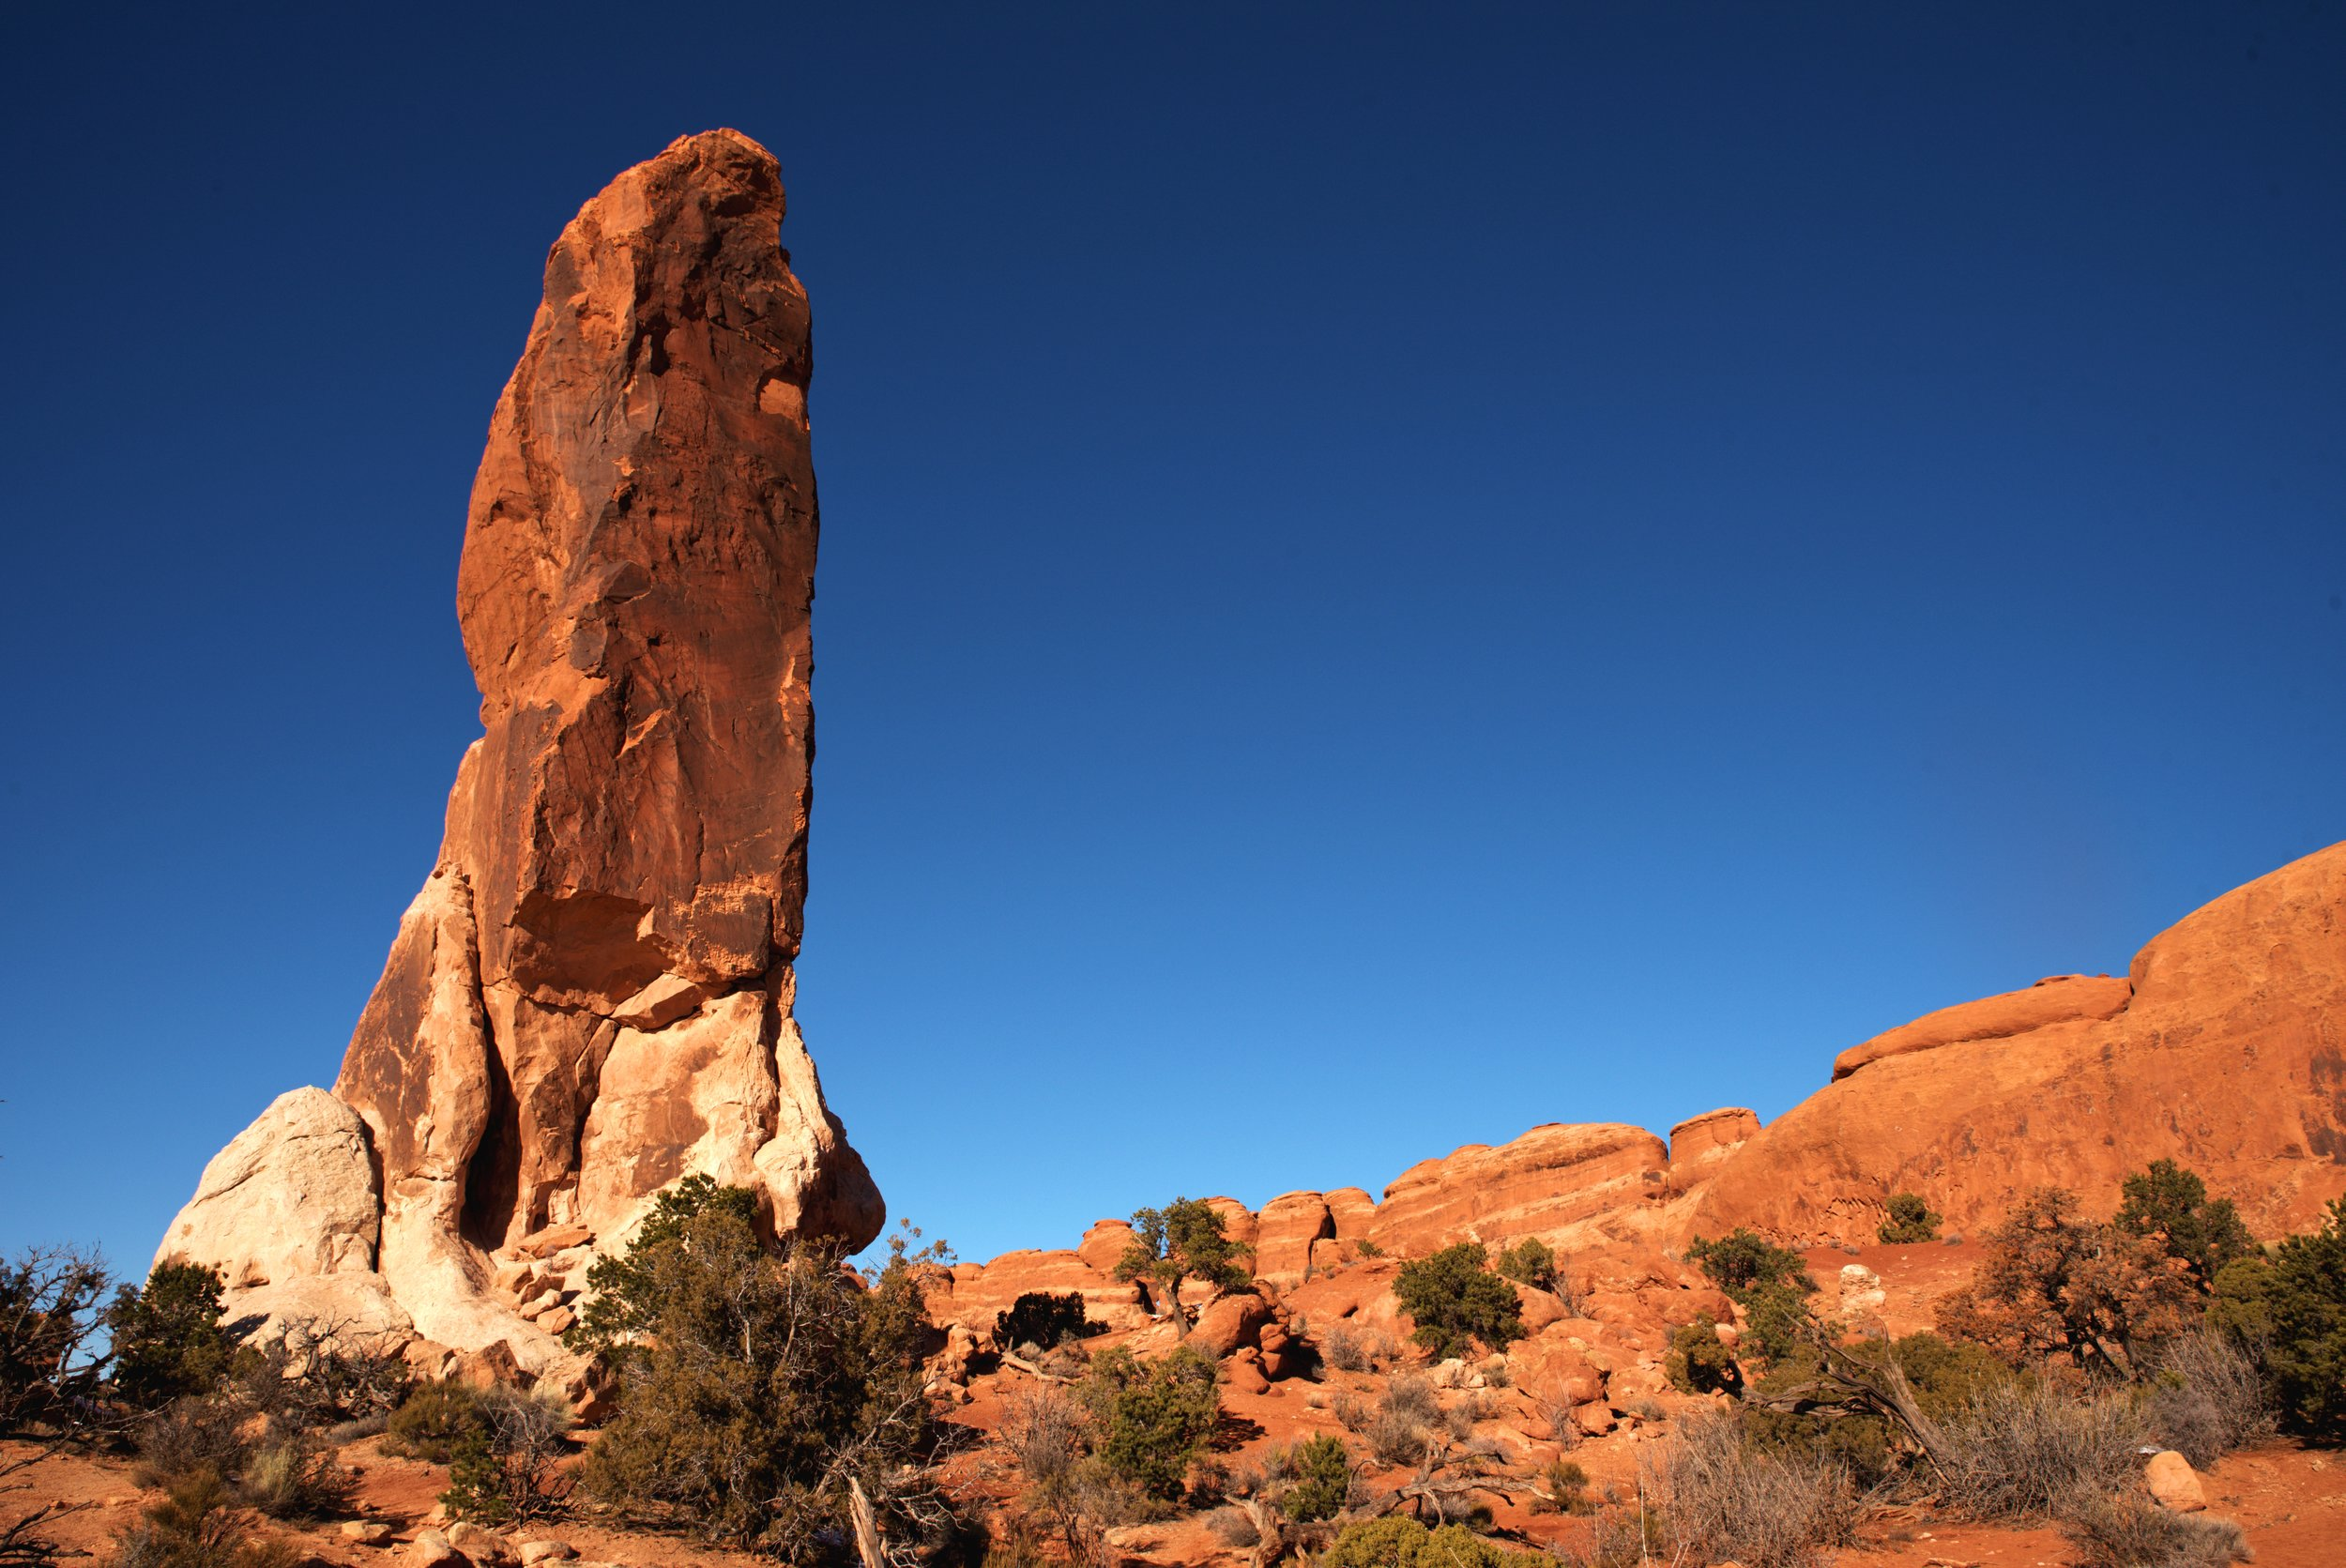 Dark Angel is tall stained formation that rises alone out of the desert.